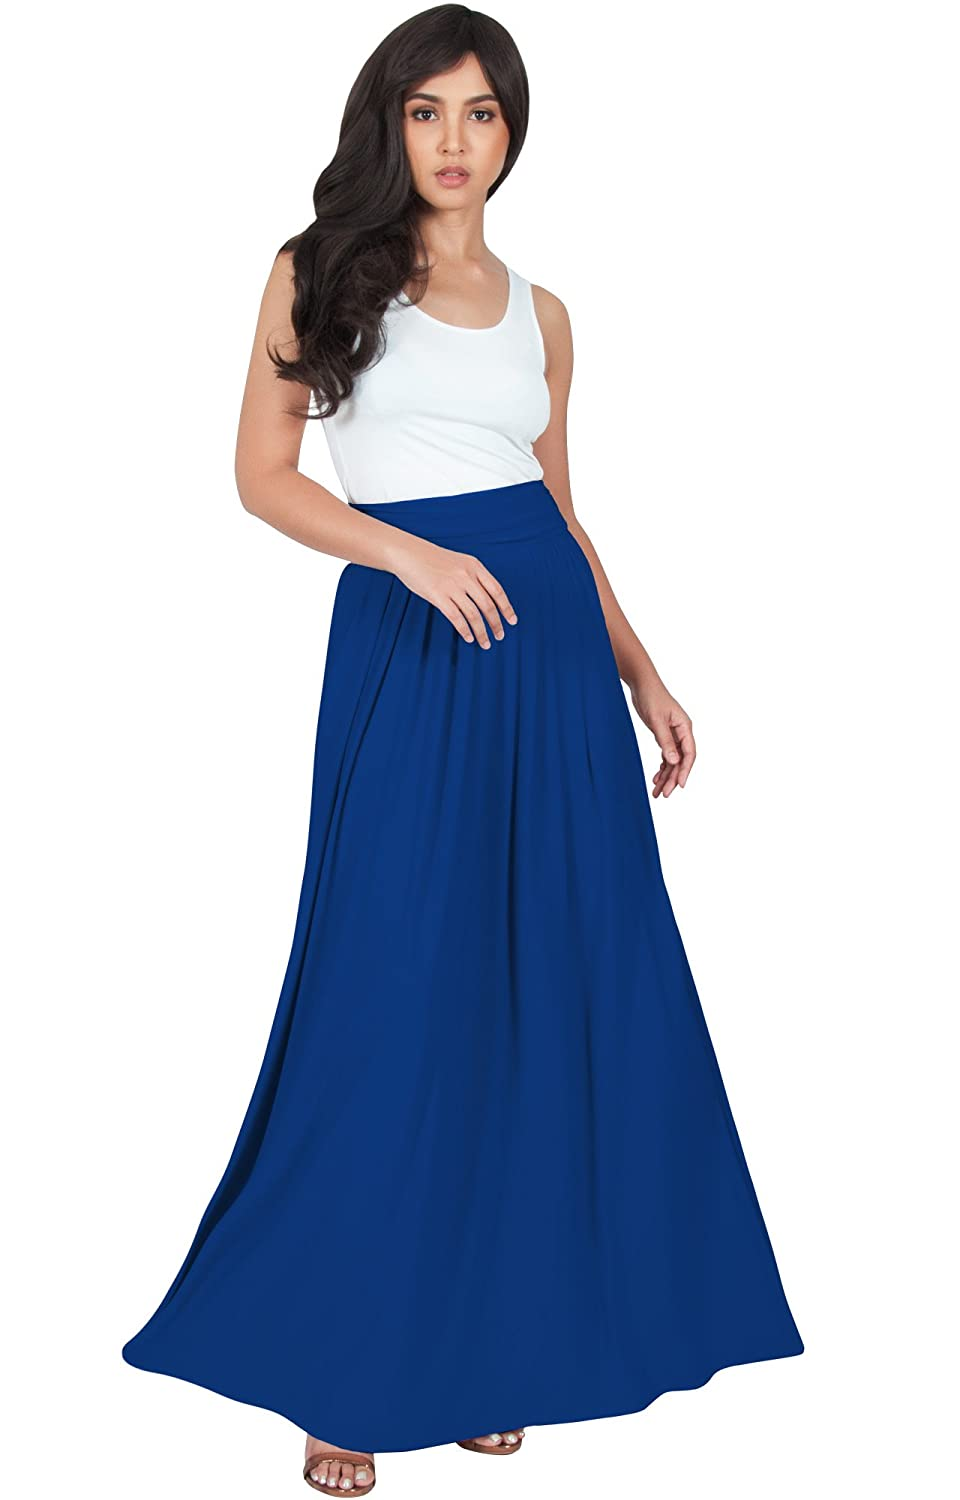 df5bcba4739f This beautiful and flattering maxi skirt features side pockets, a pleated  flowy cut and a high stretchy elastic waist. The design is made from high  quality ...